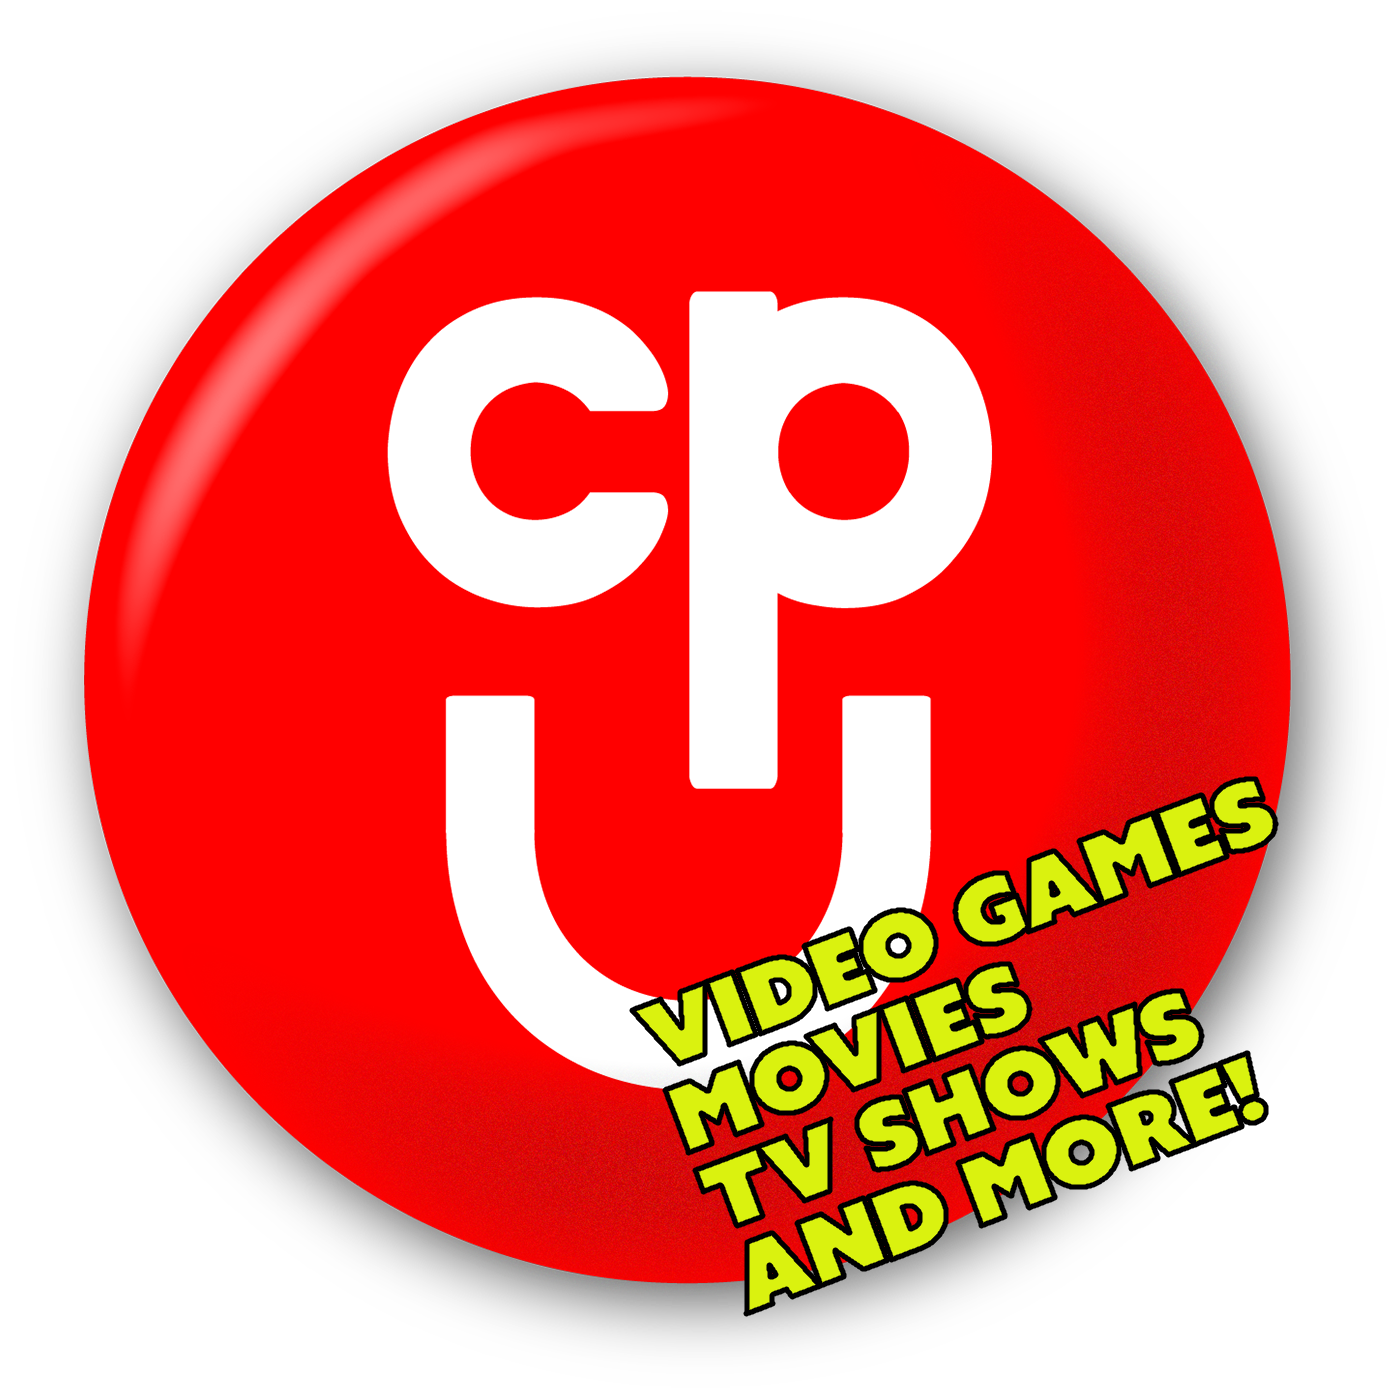 cPOPuniverse